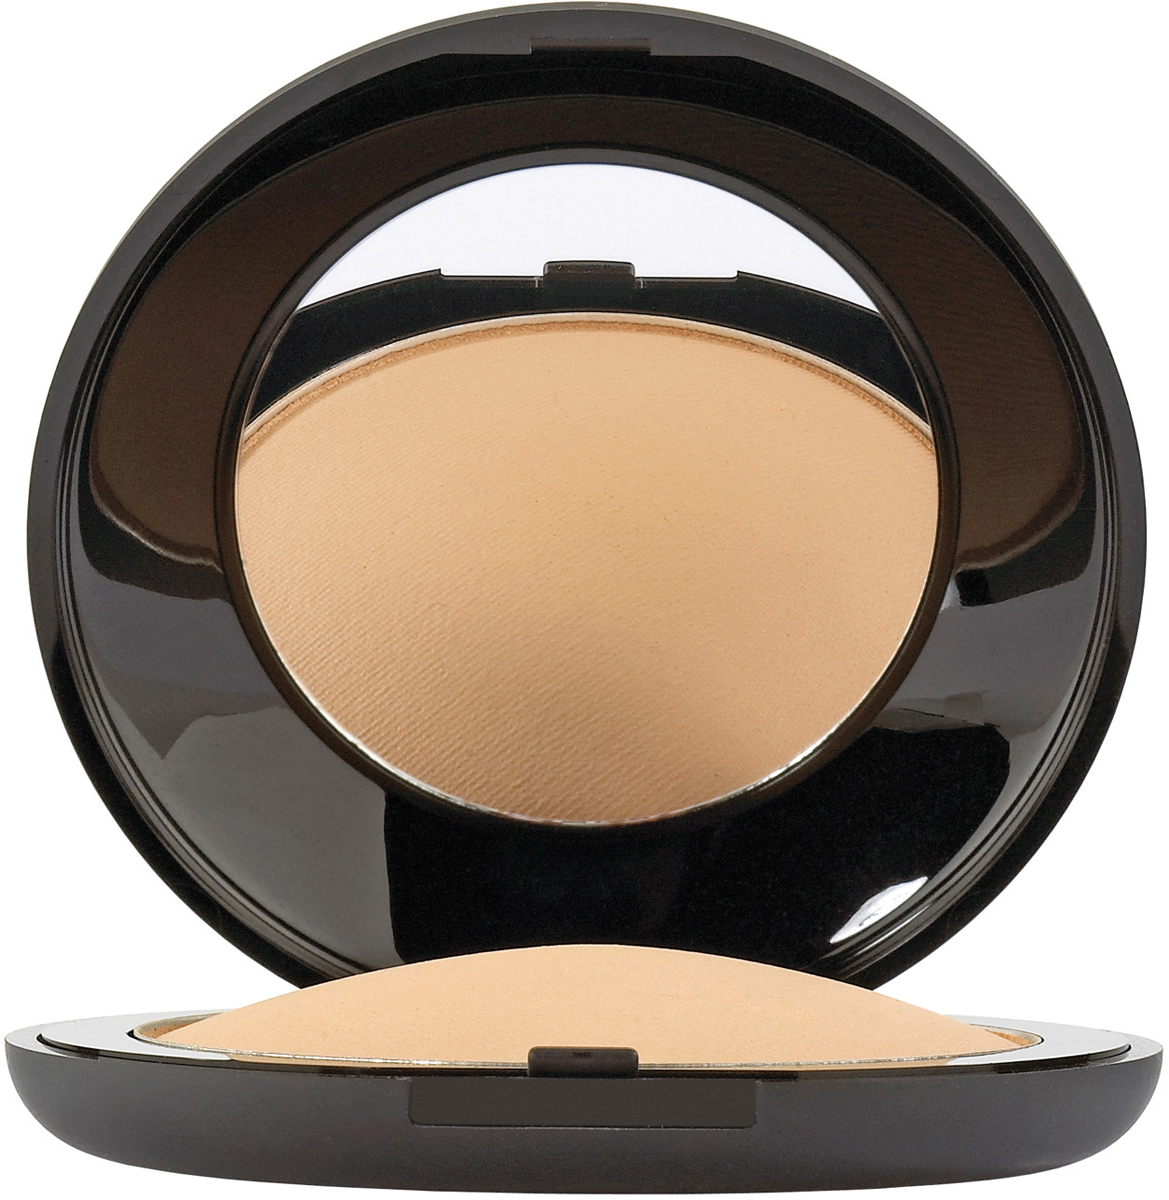 Make up Factory Минеральная компактная пудра Mineral Compact Powder №3, цвет: бежевый, 15 г пудра essence mattifying compact powder 04 цвет 04 perfect beige variant hex name facfbb